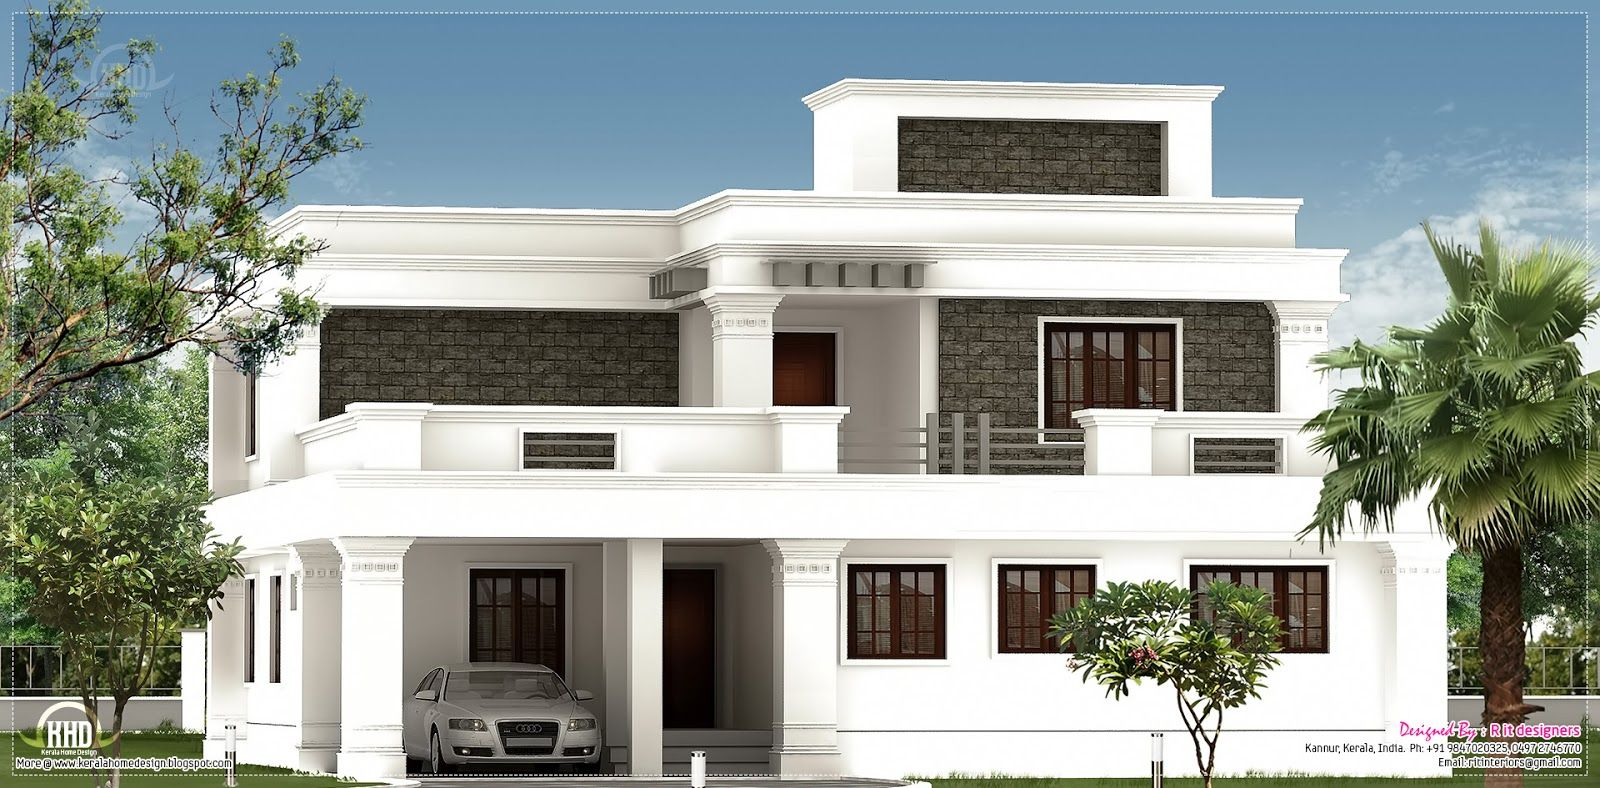 Flat roof homes designs flat roof villa exterior in 2400 for House front design